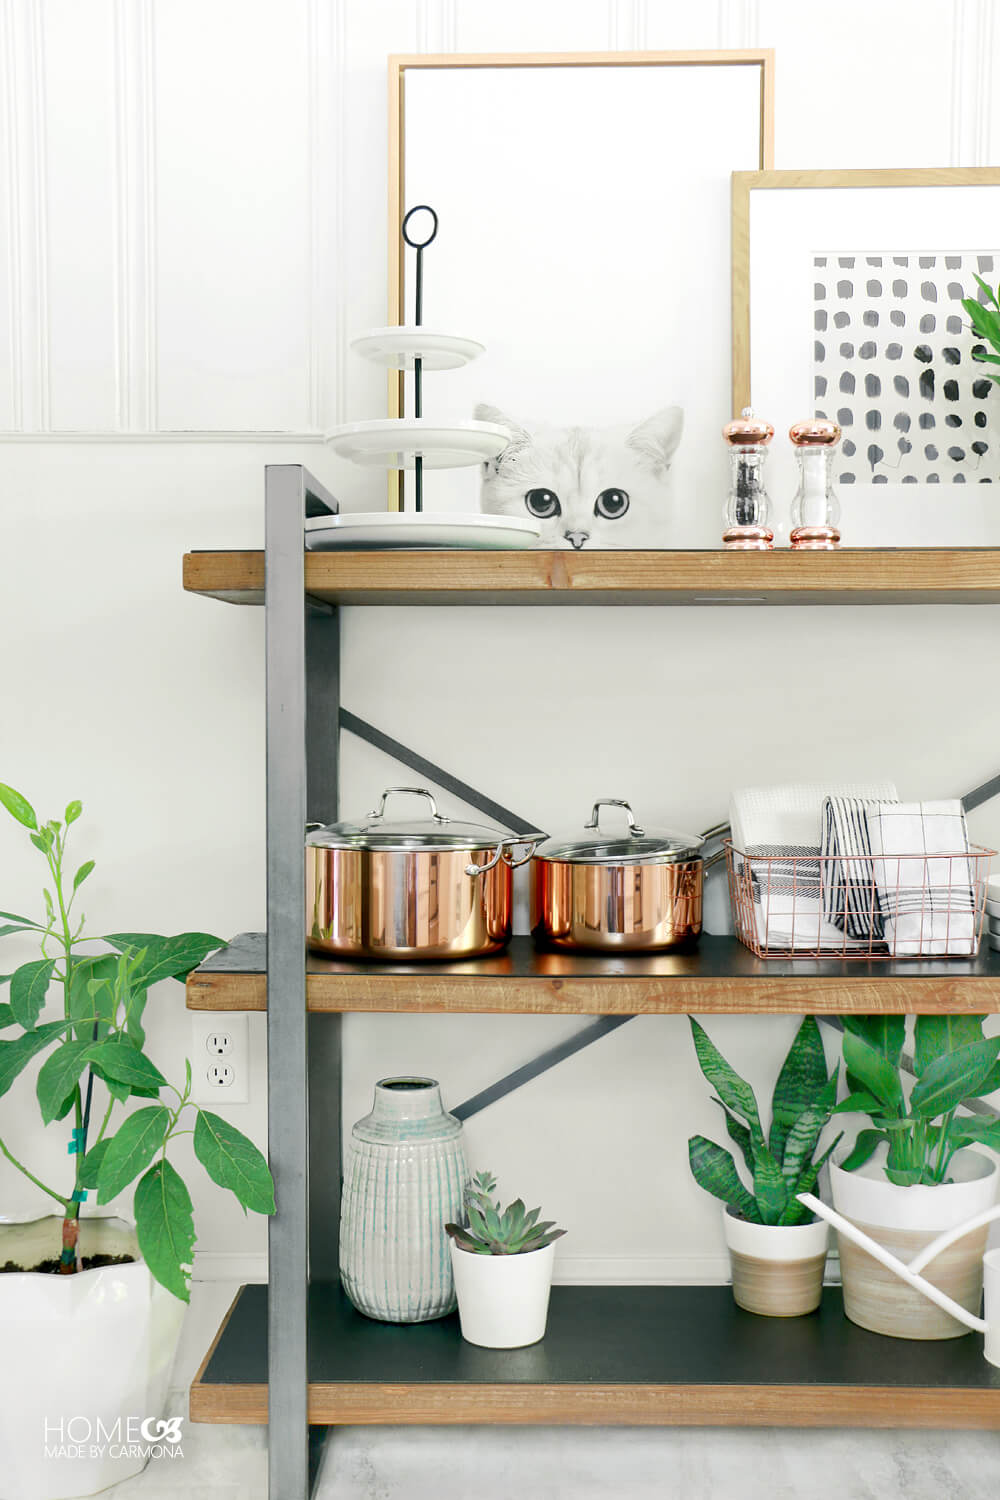 Small kitchen makeover - open kitchen storage and shelving